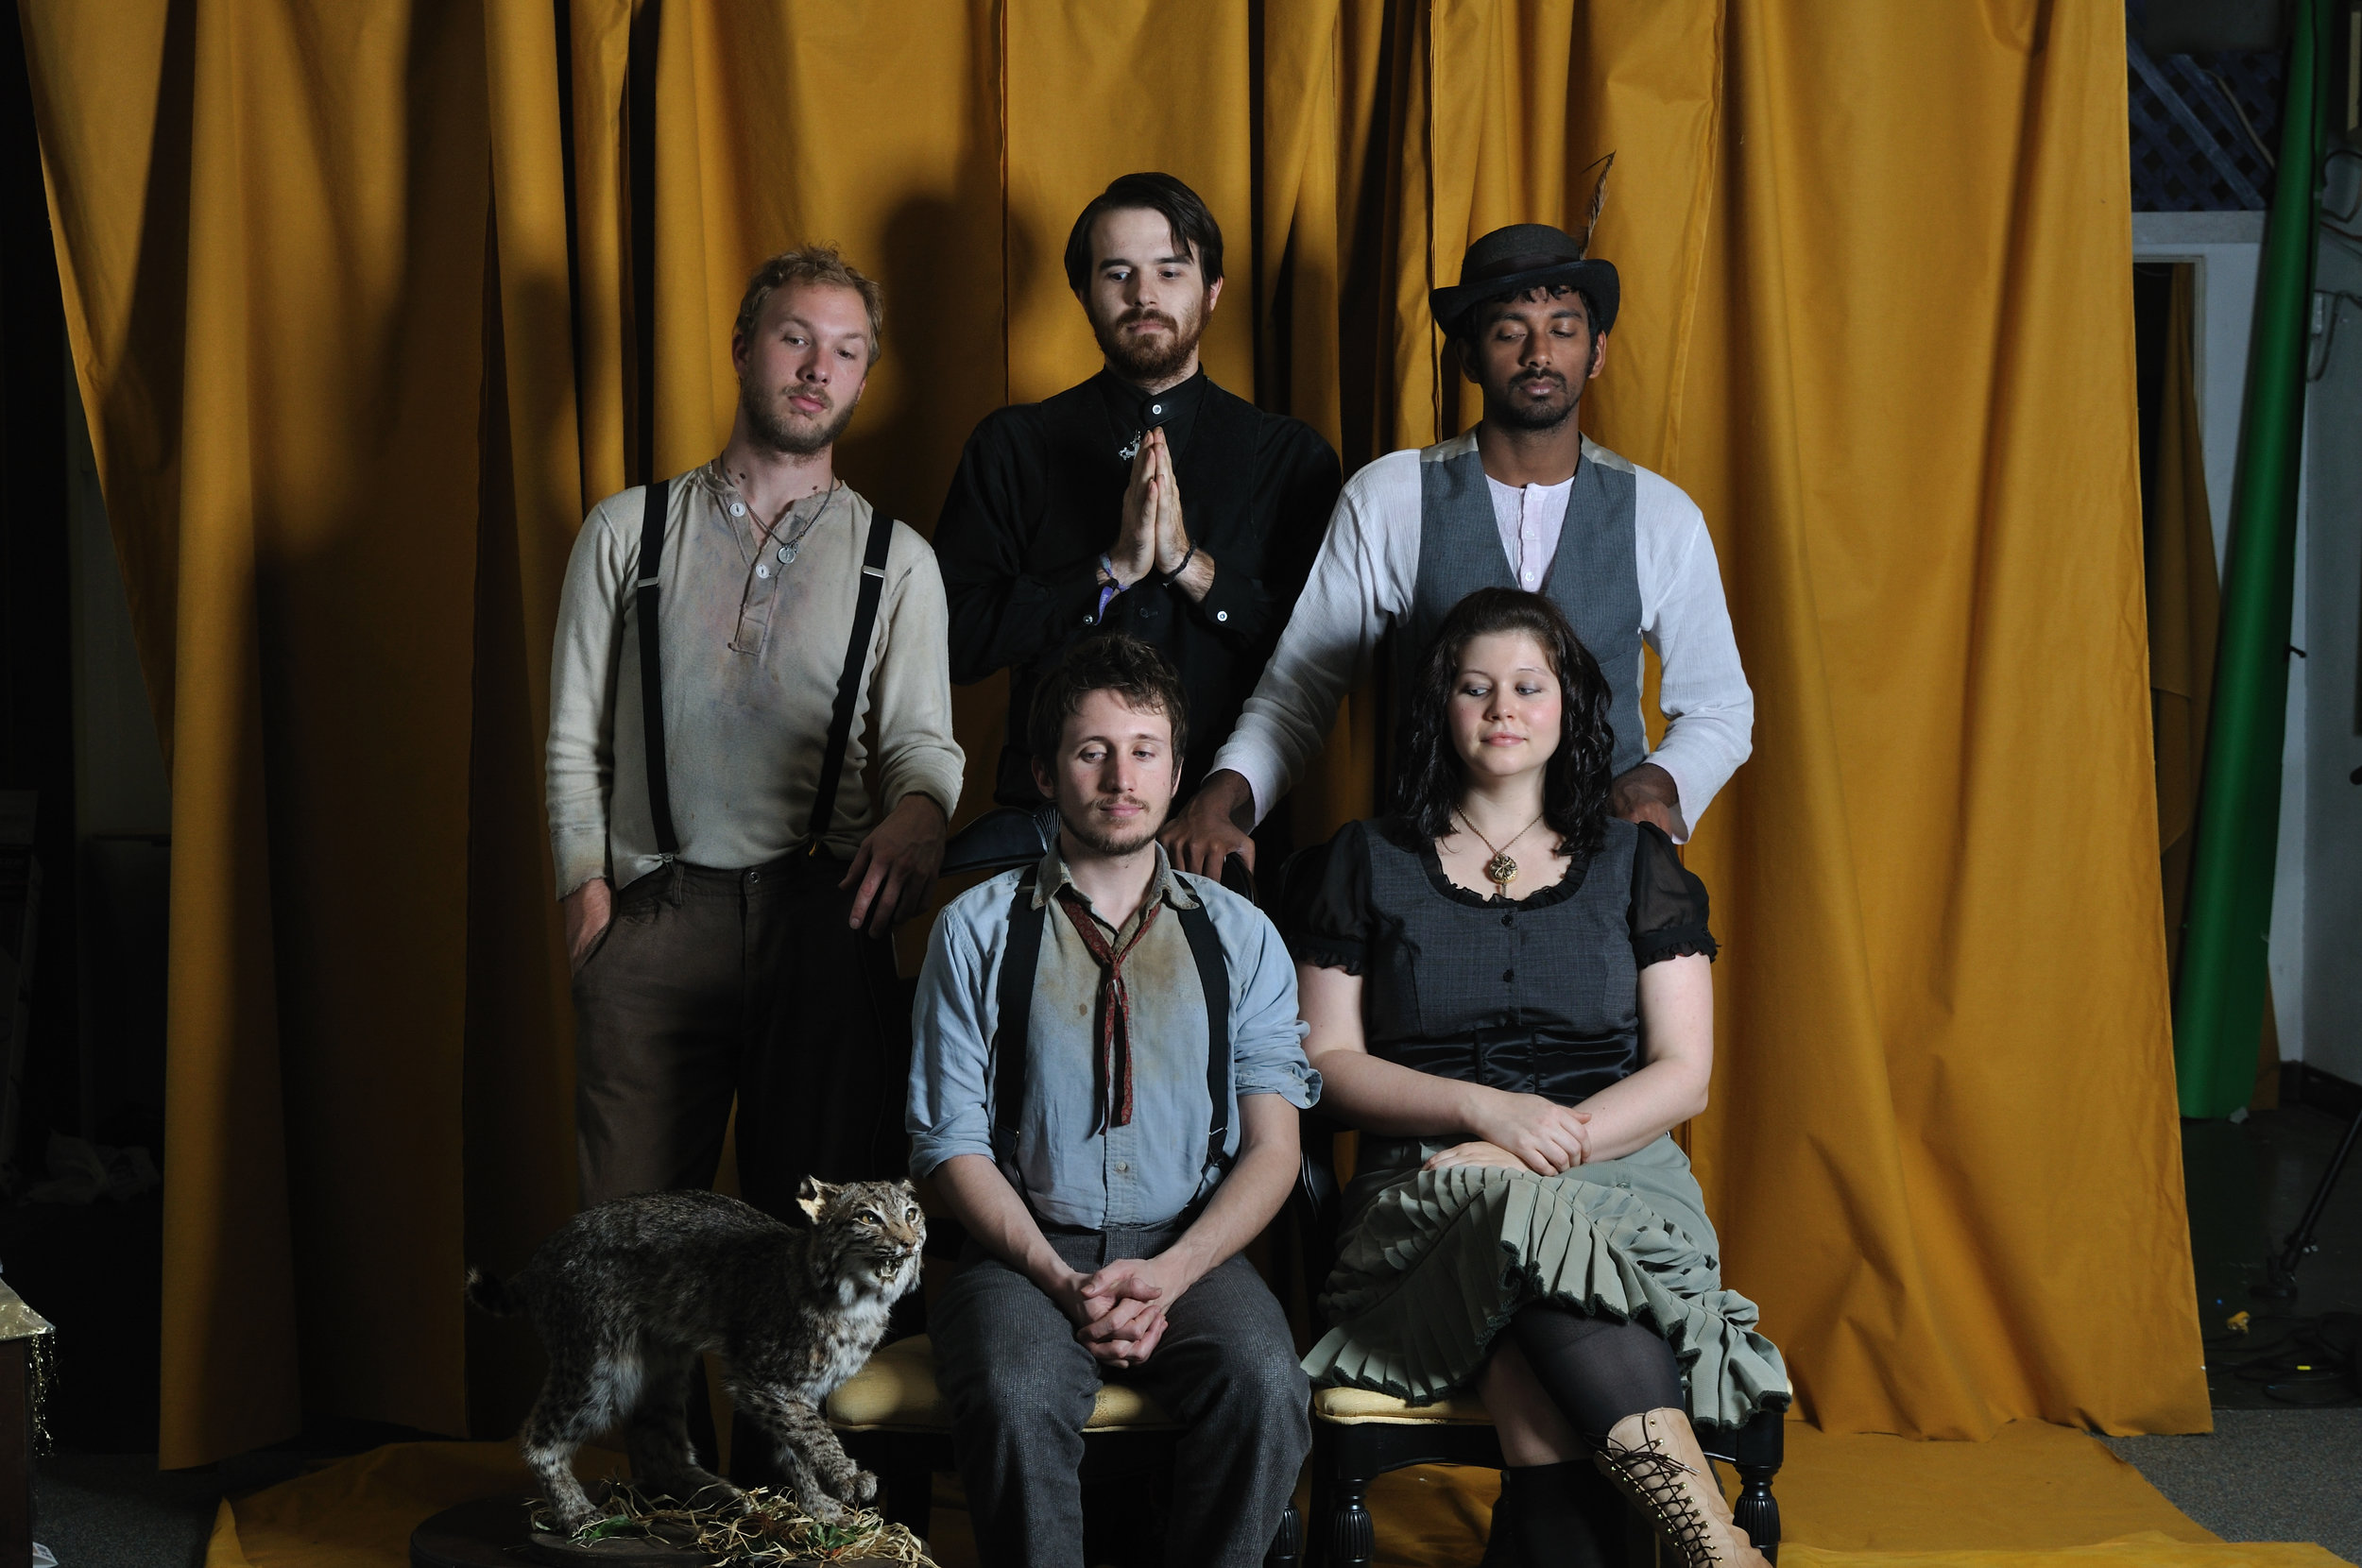 The Restoration : Eddie Lord, Adam Corbett, Sharon Gnanashekar, myself and Lauren Garner   (M. West, 2009)